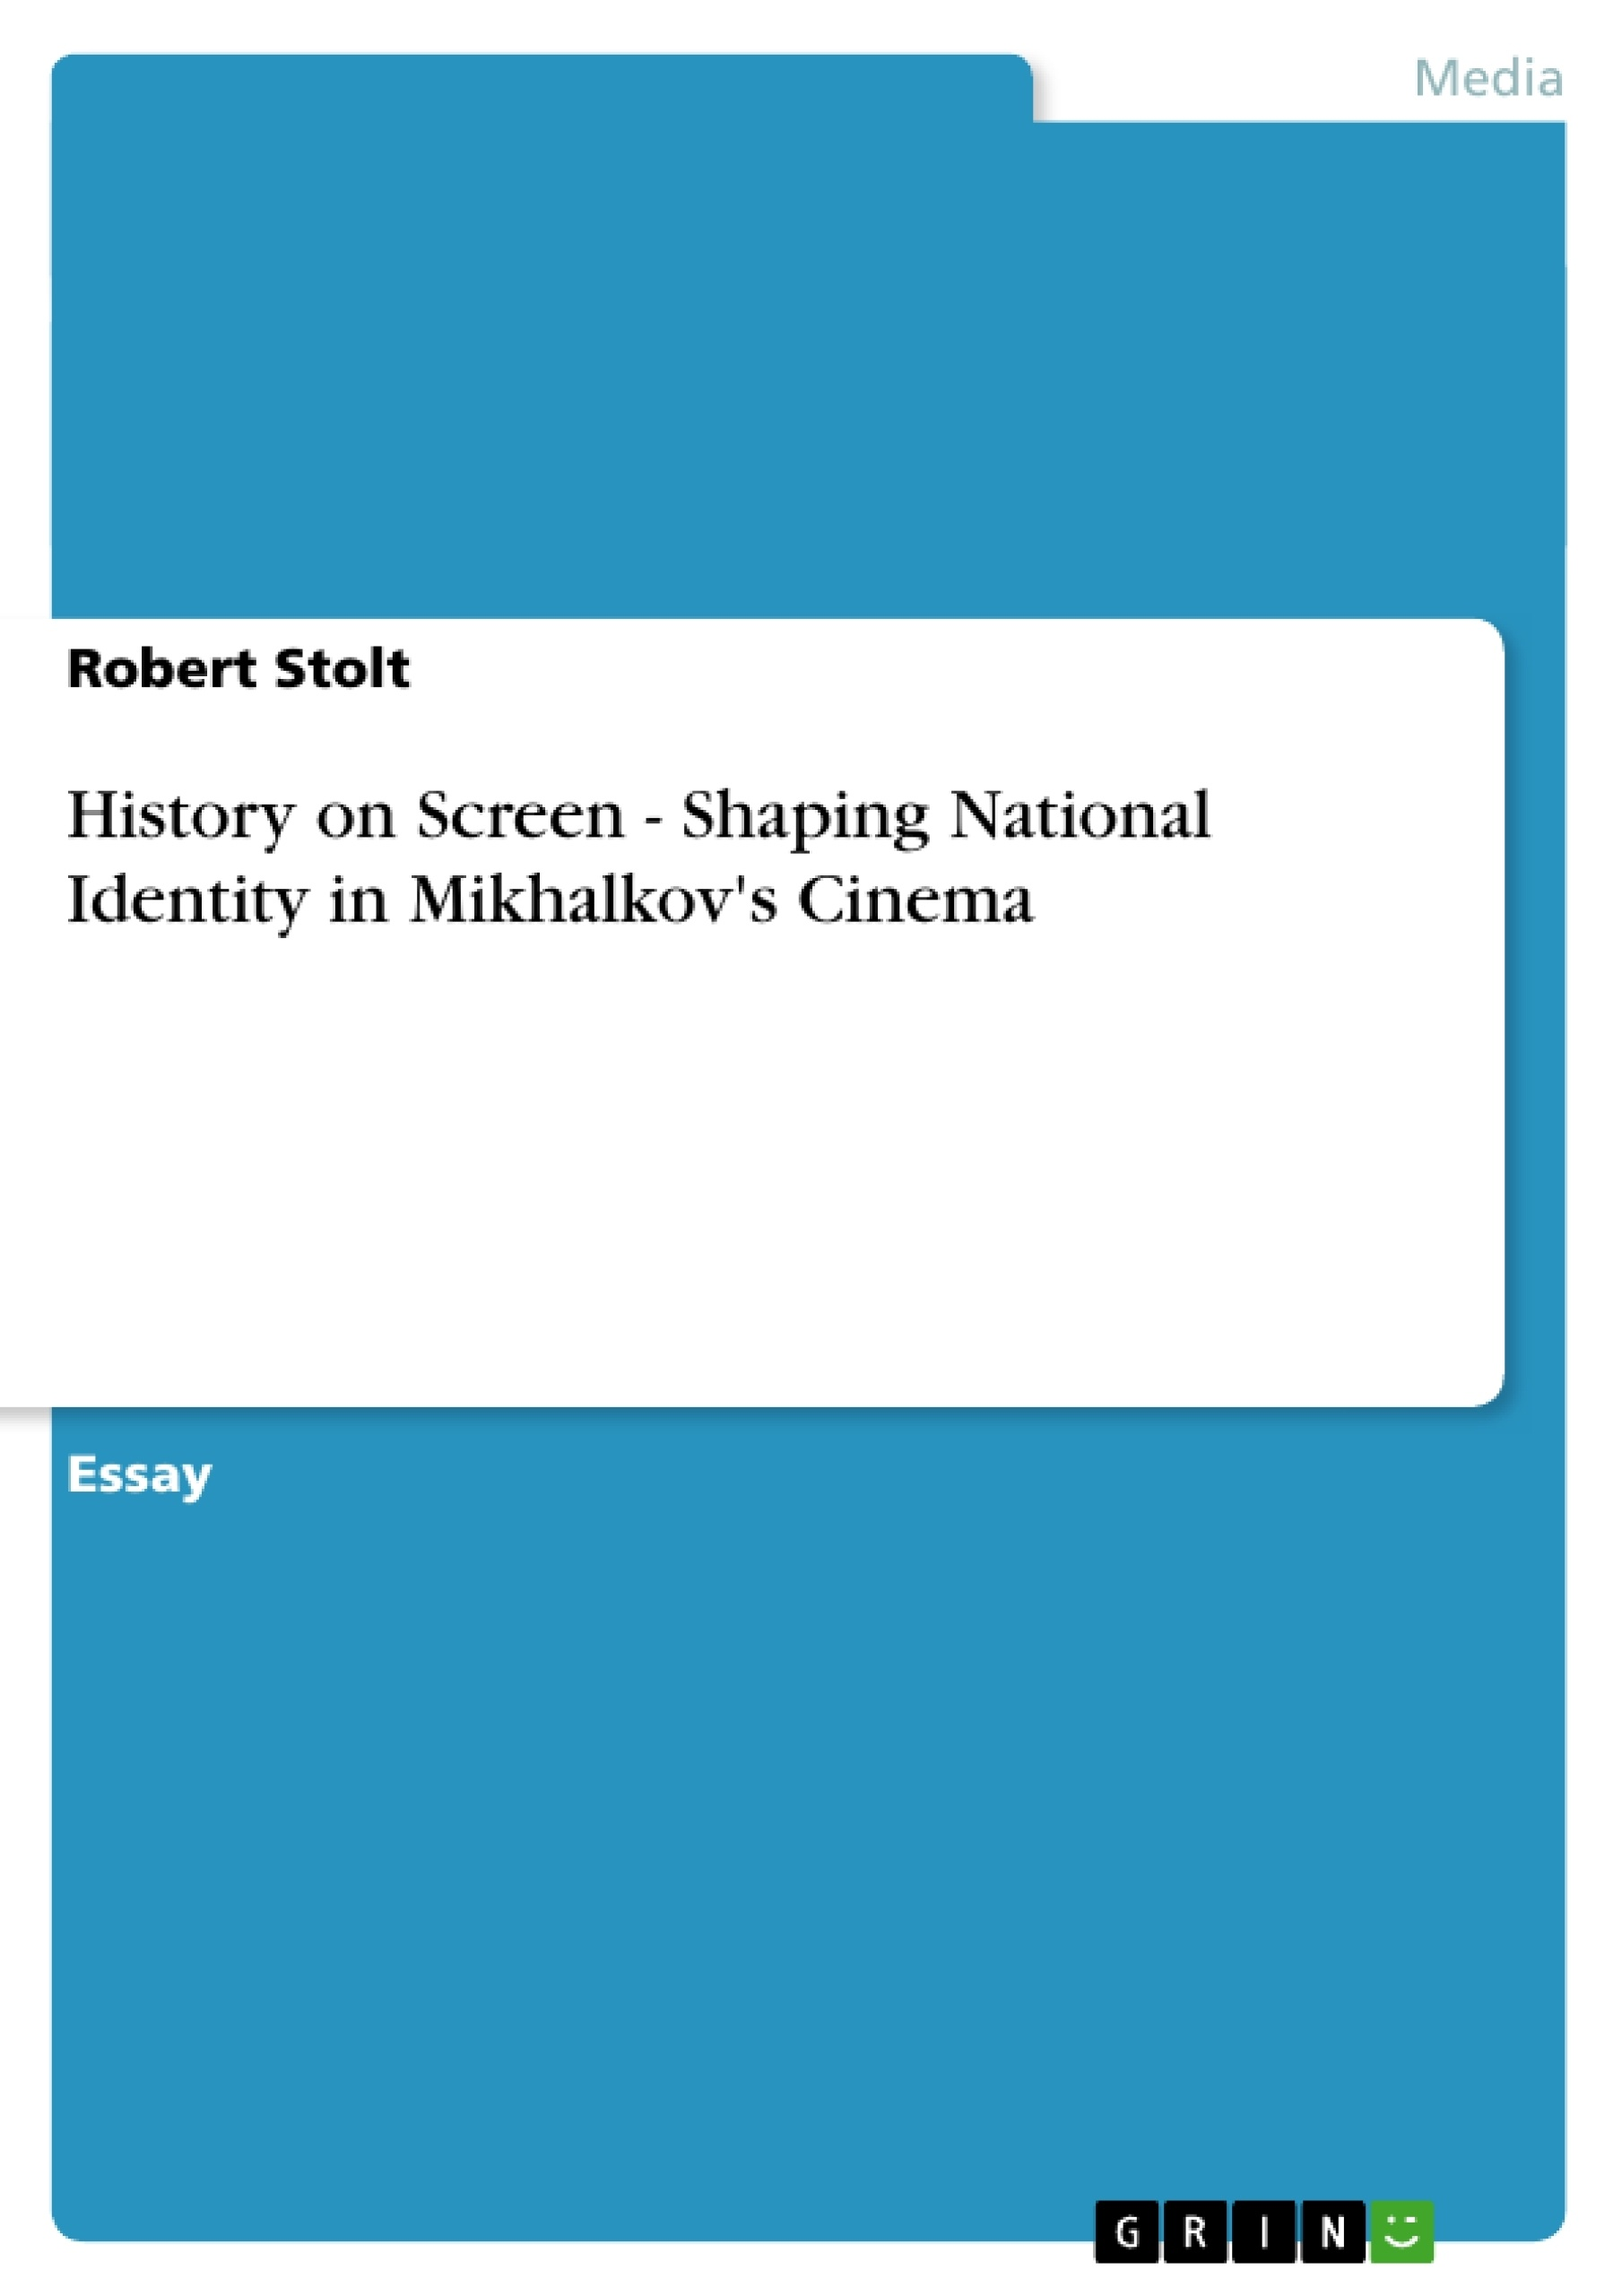 Title: History on Screen - Shaping National Identity in Mikhalkov's Cinema